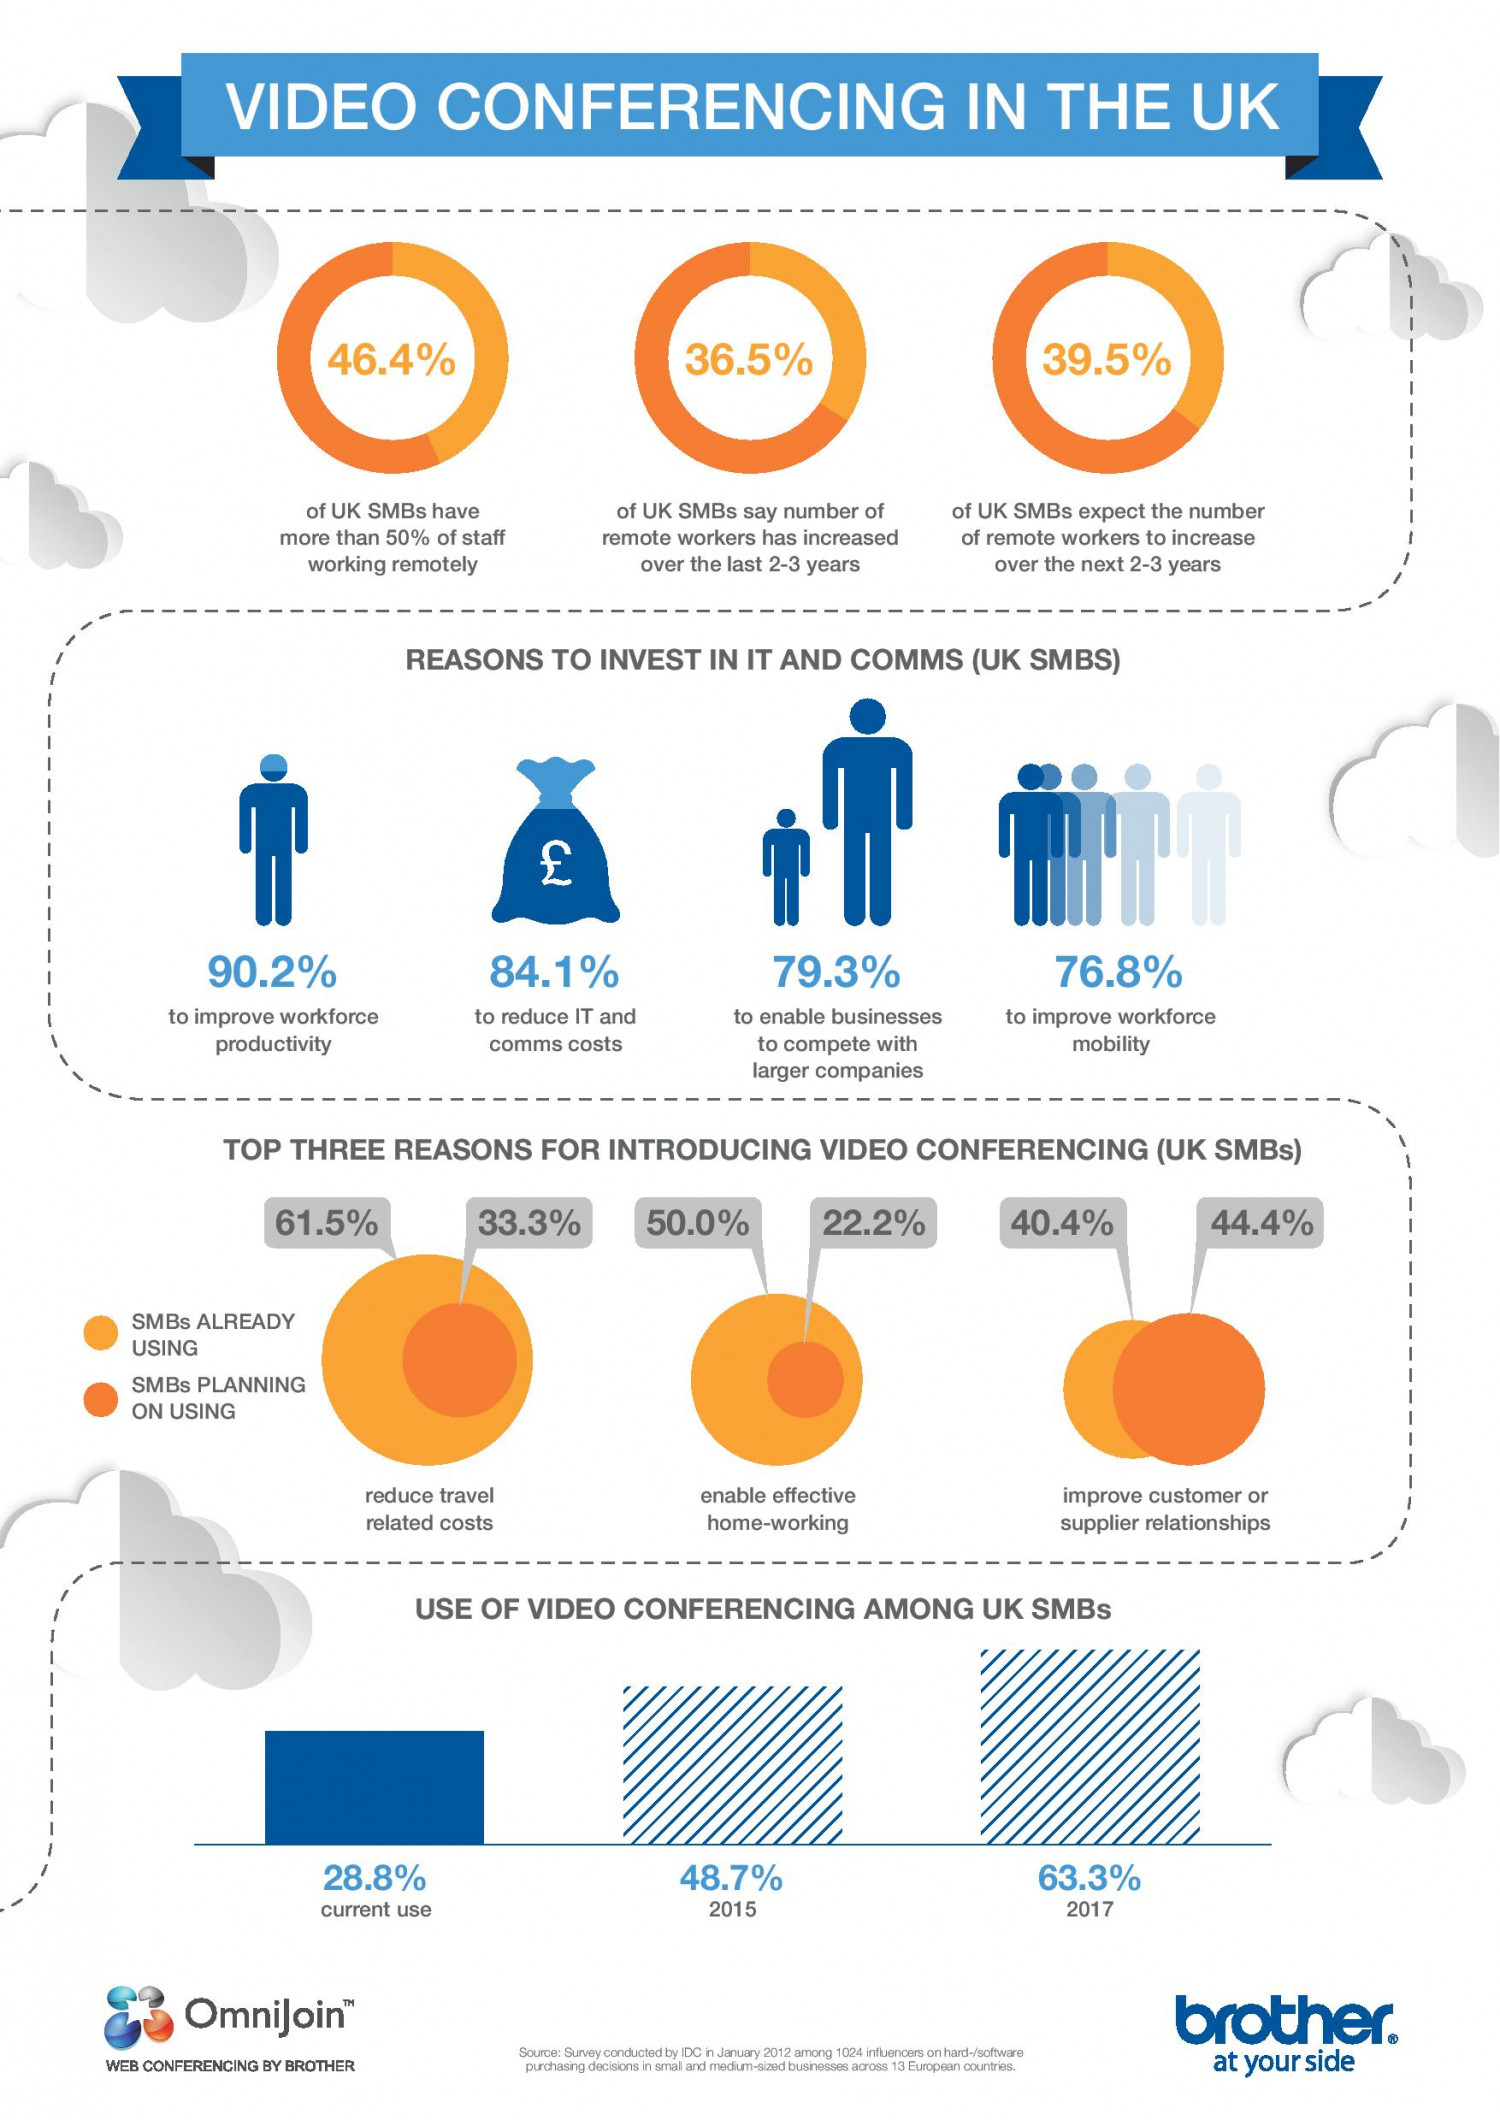 Web Conferencing in the UK Infographic